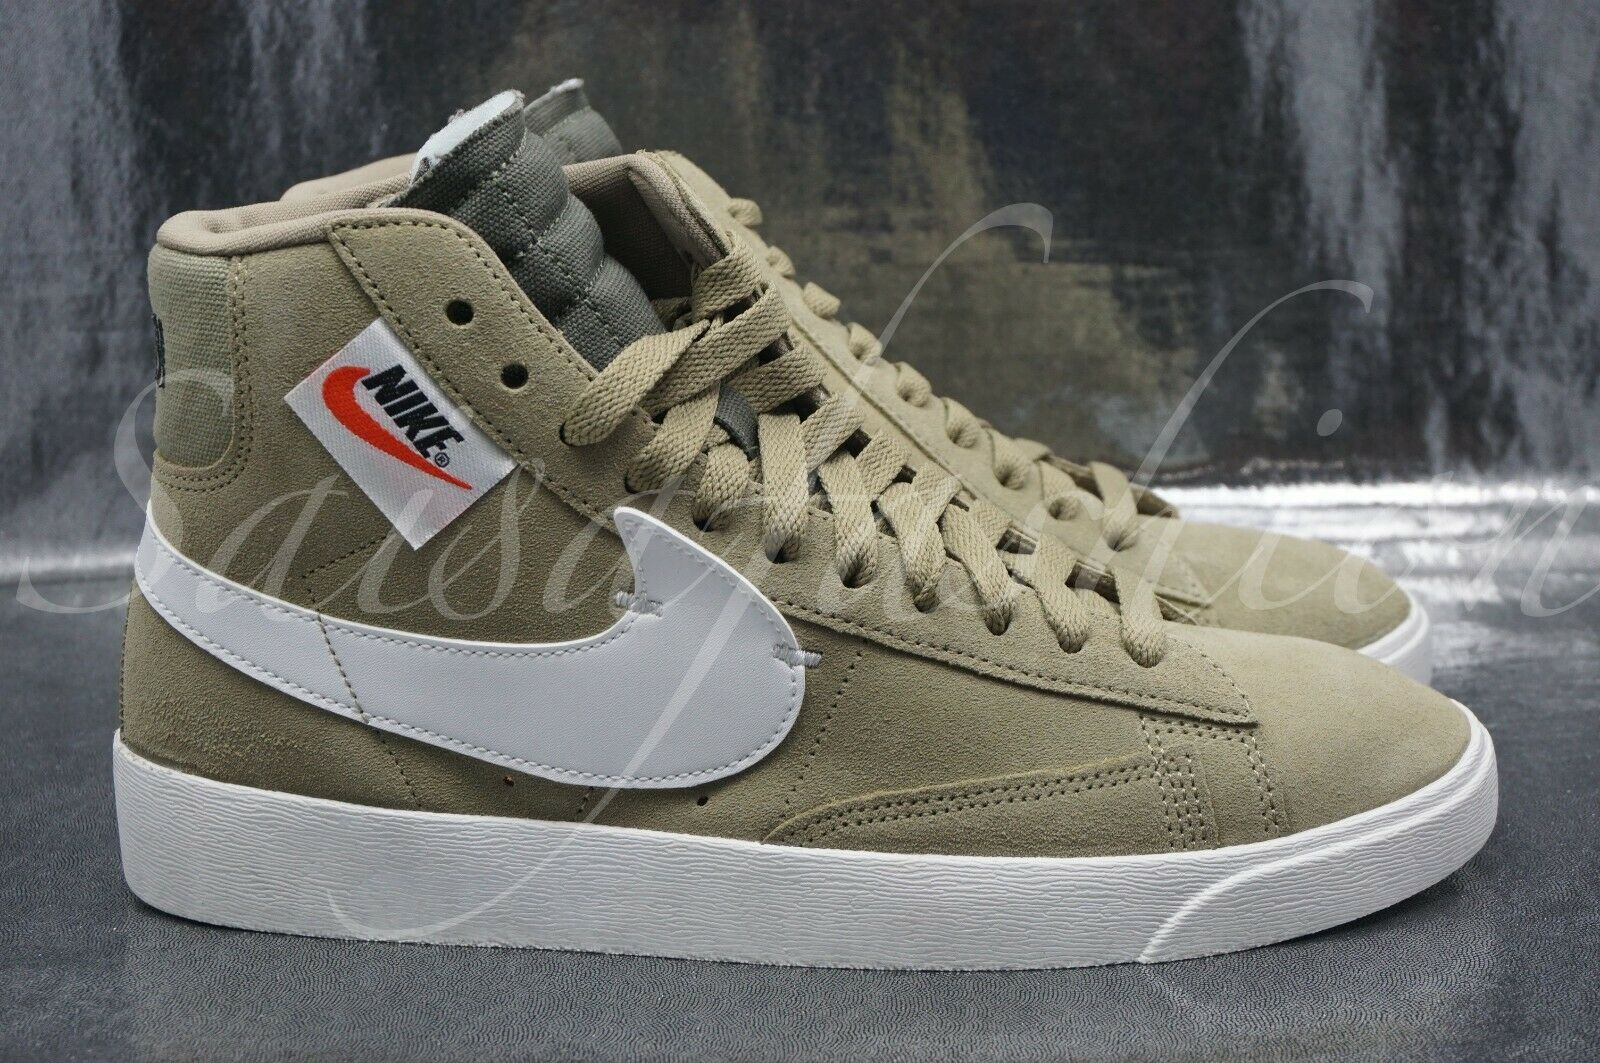 W Nike Blazer Mid Rebel Women's shoes Neutral Olive White BQ4022-201 Sz 8.5